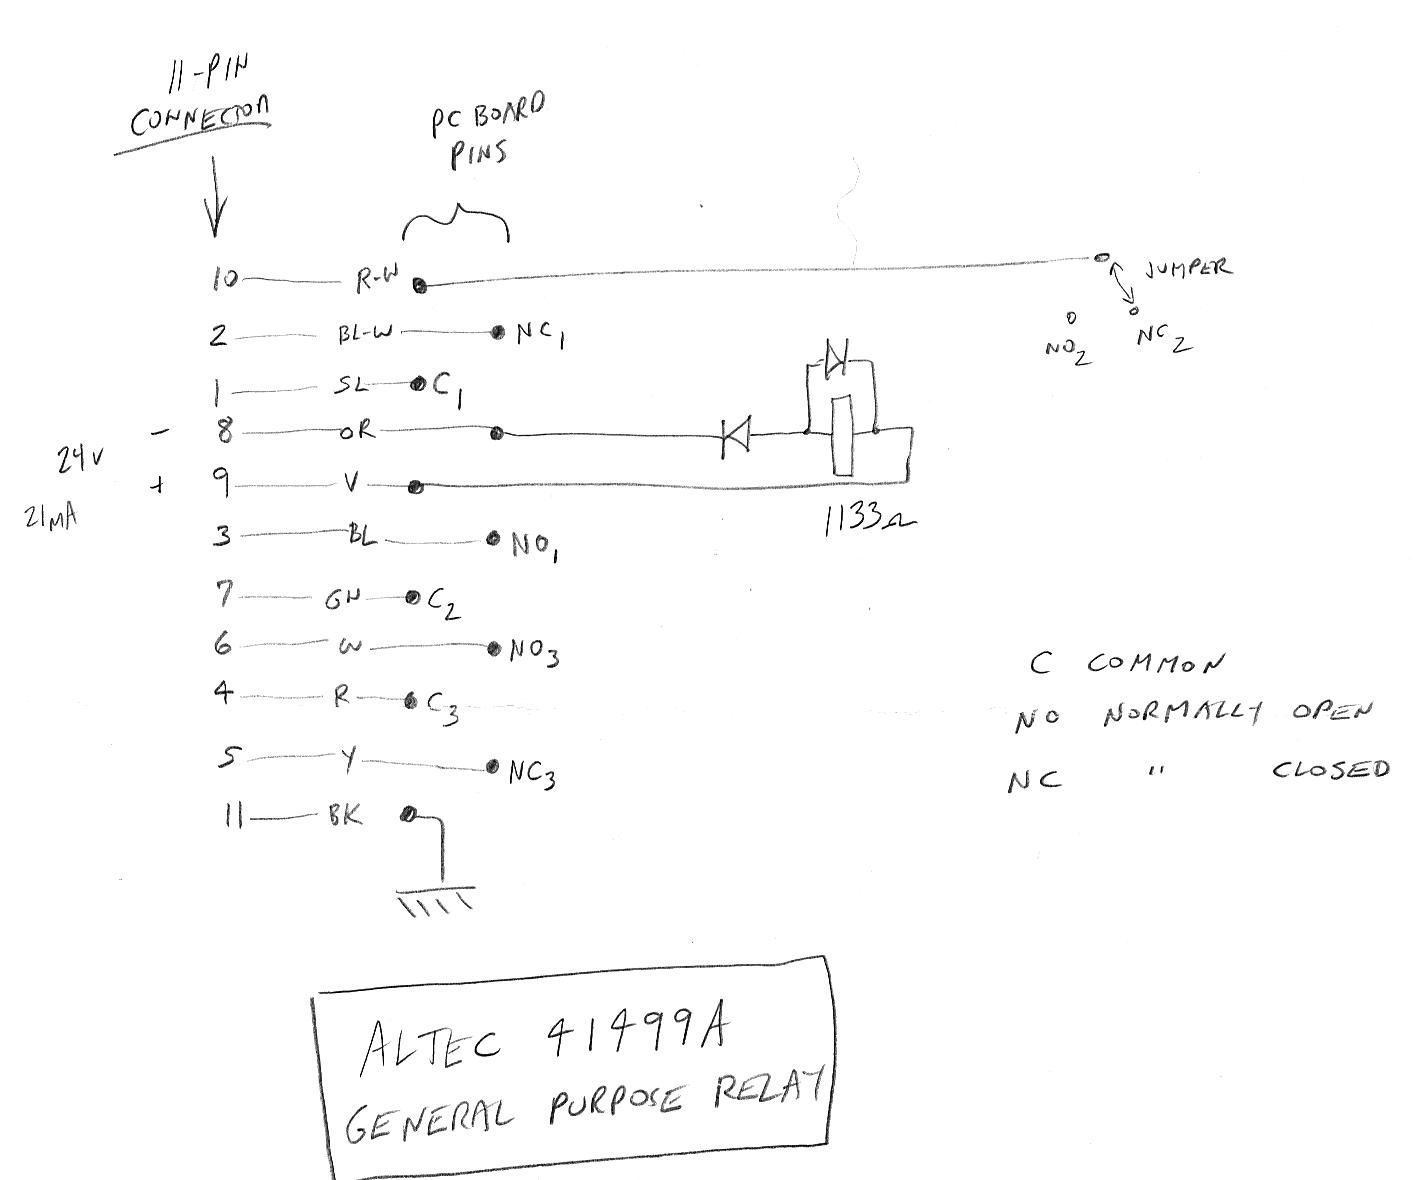 Telephone Technical References Relay No Nc Common Altec 41499a General Purpose Sketch